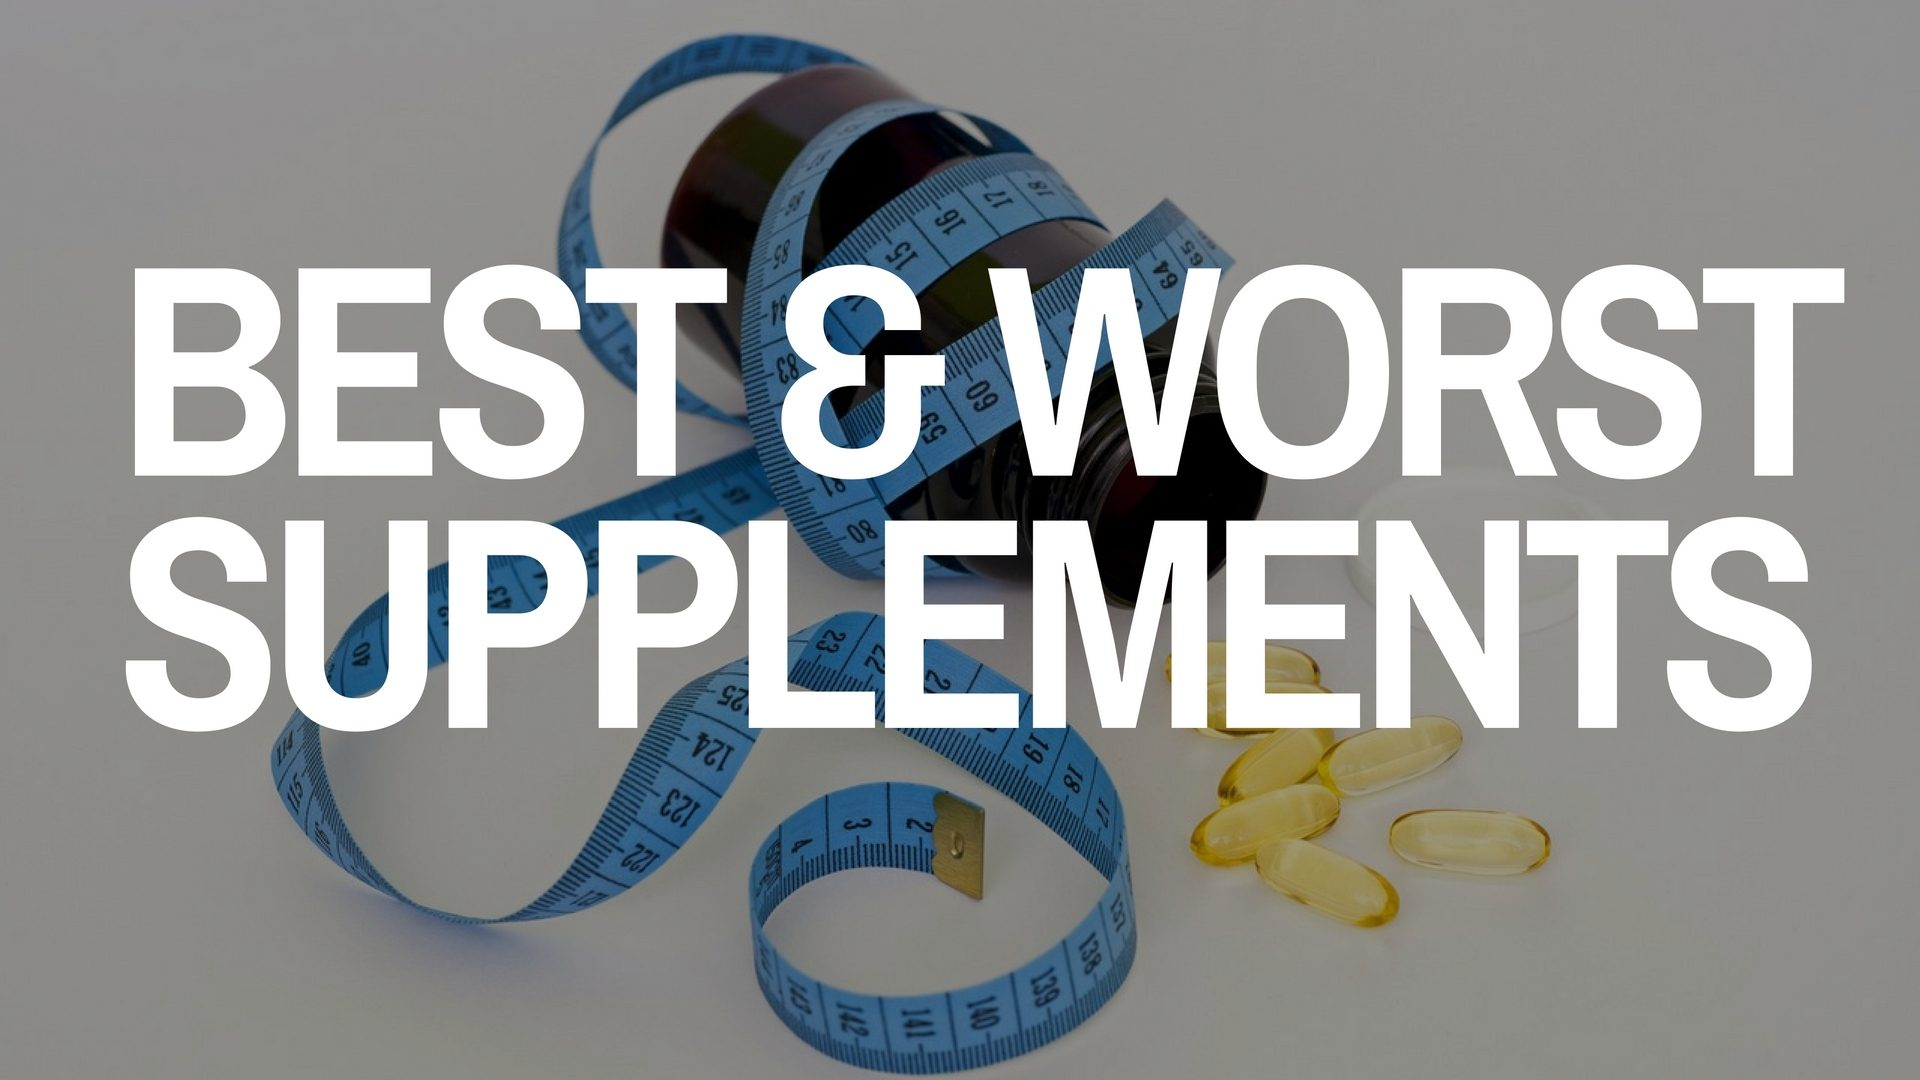 The Best and Worst Supplements